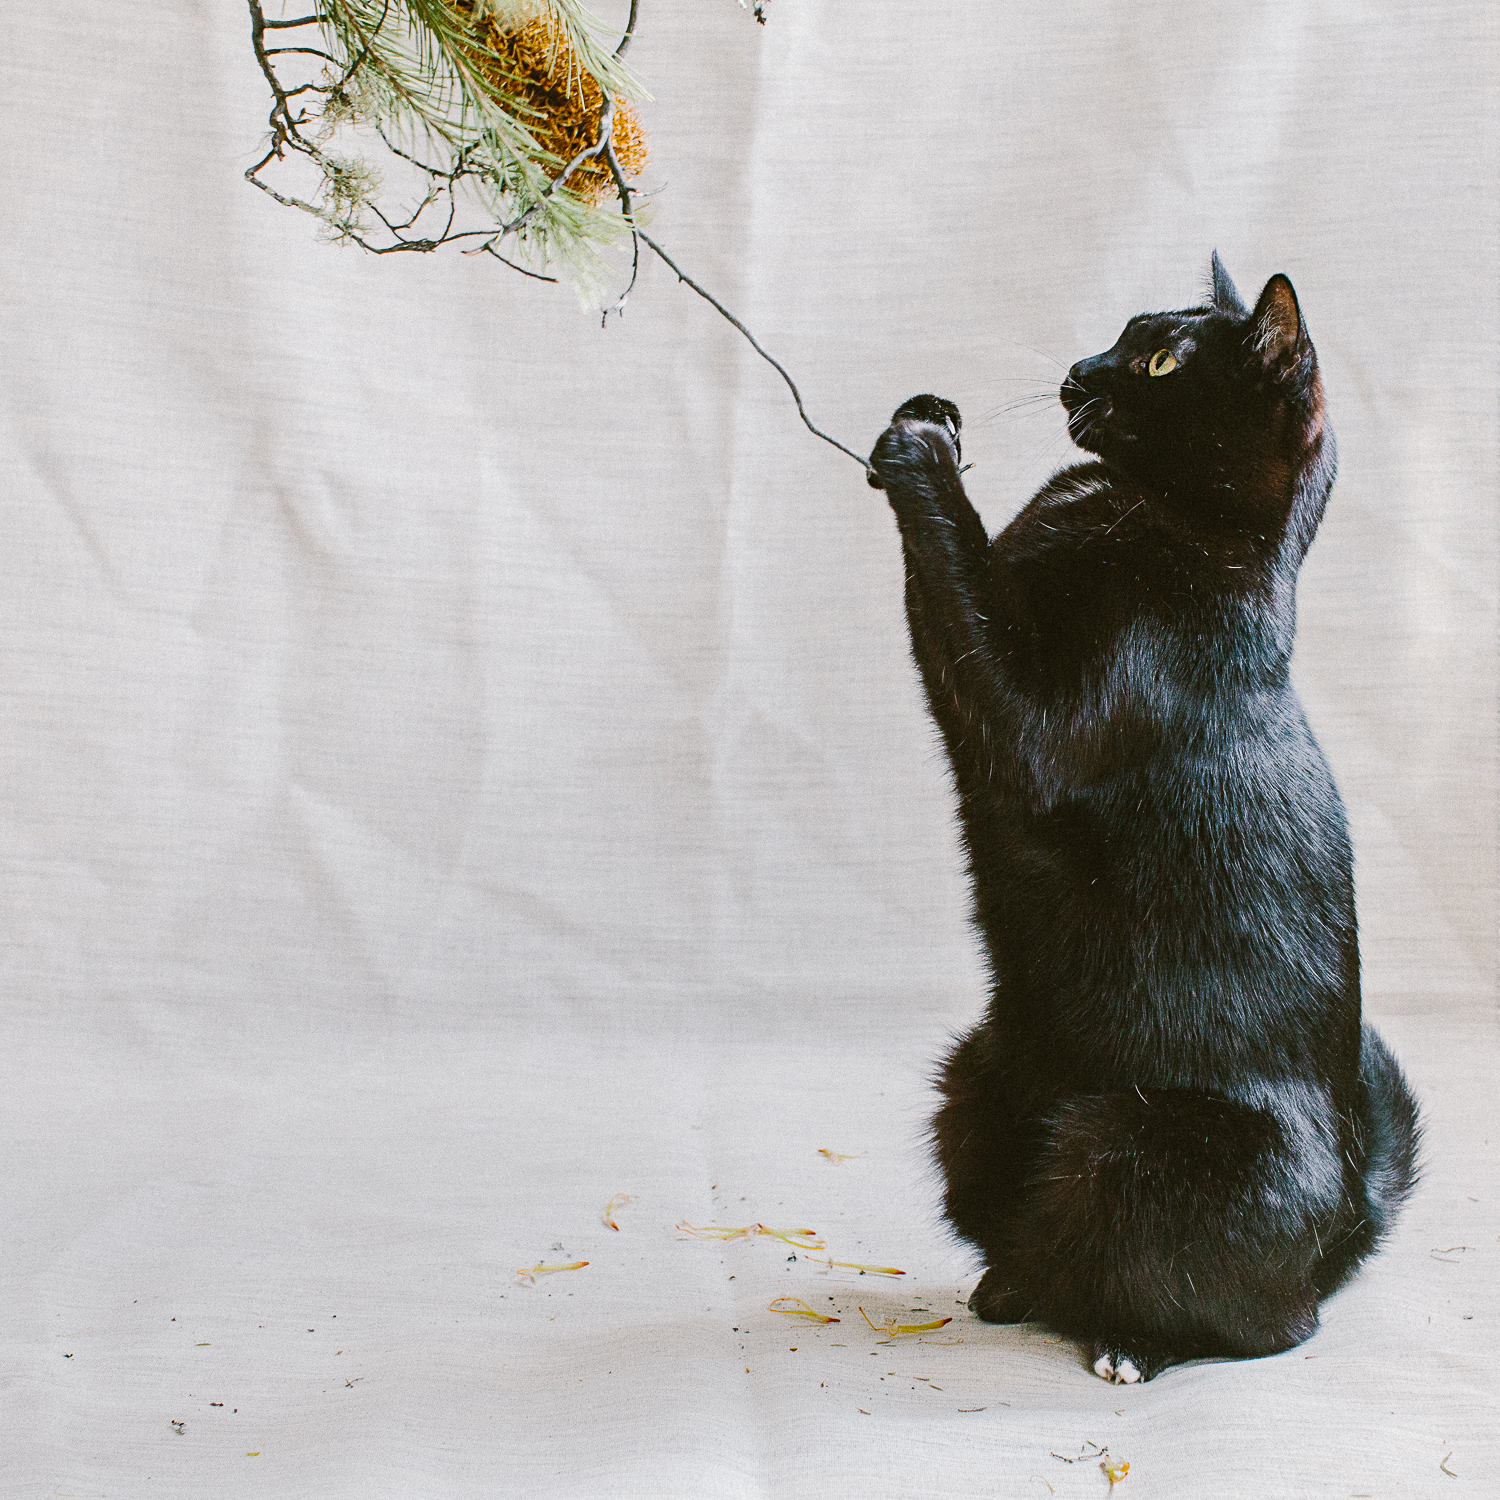 twoguineapigs_photography_ruby_slippers_cat_and_floral_series_1500-9.jpg